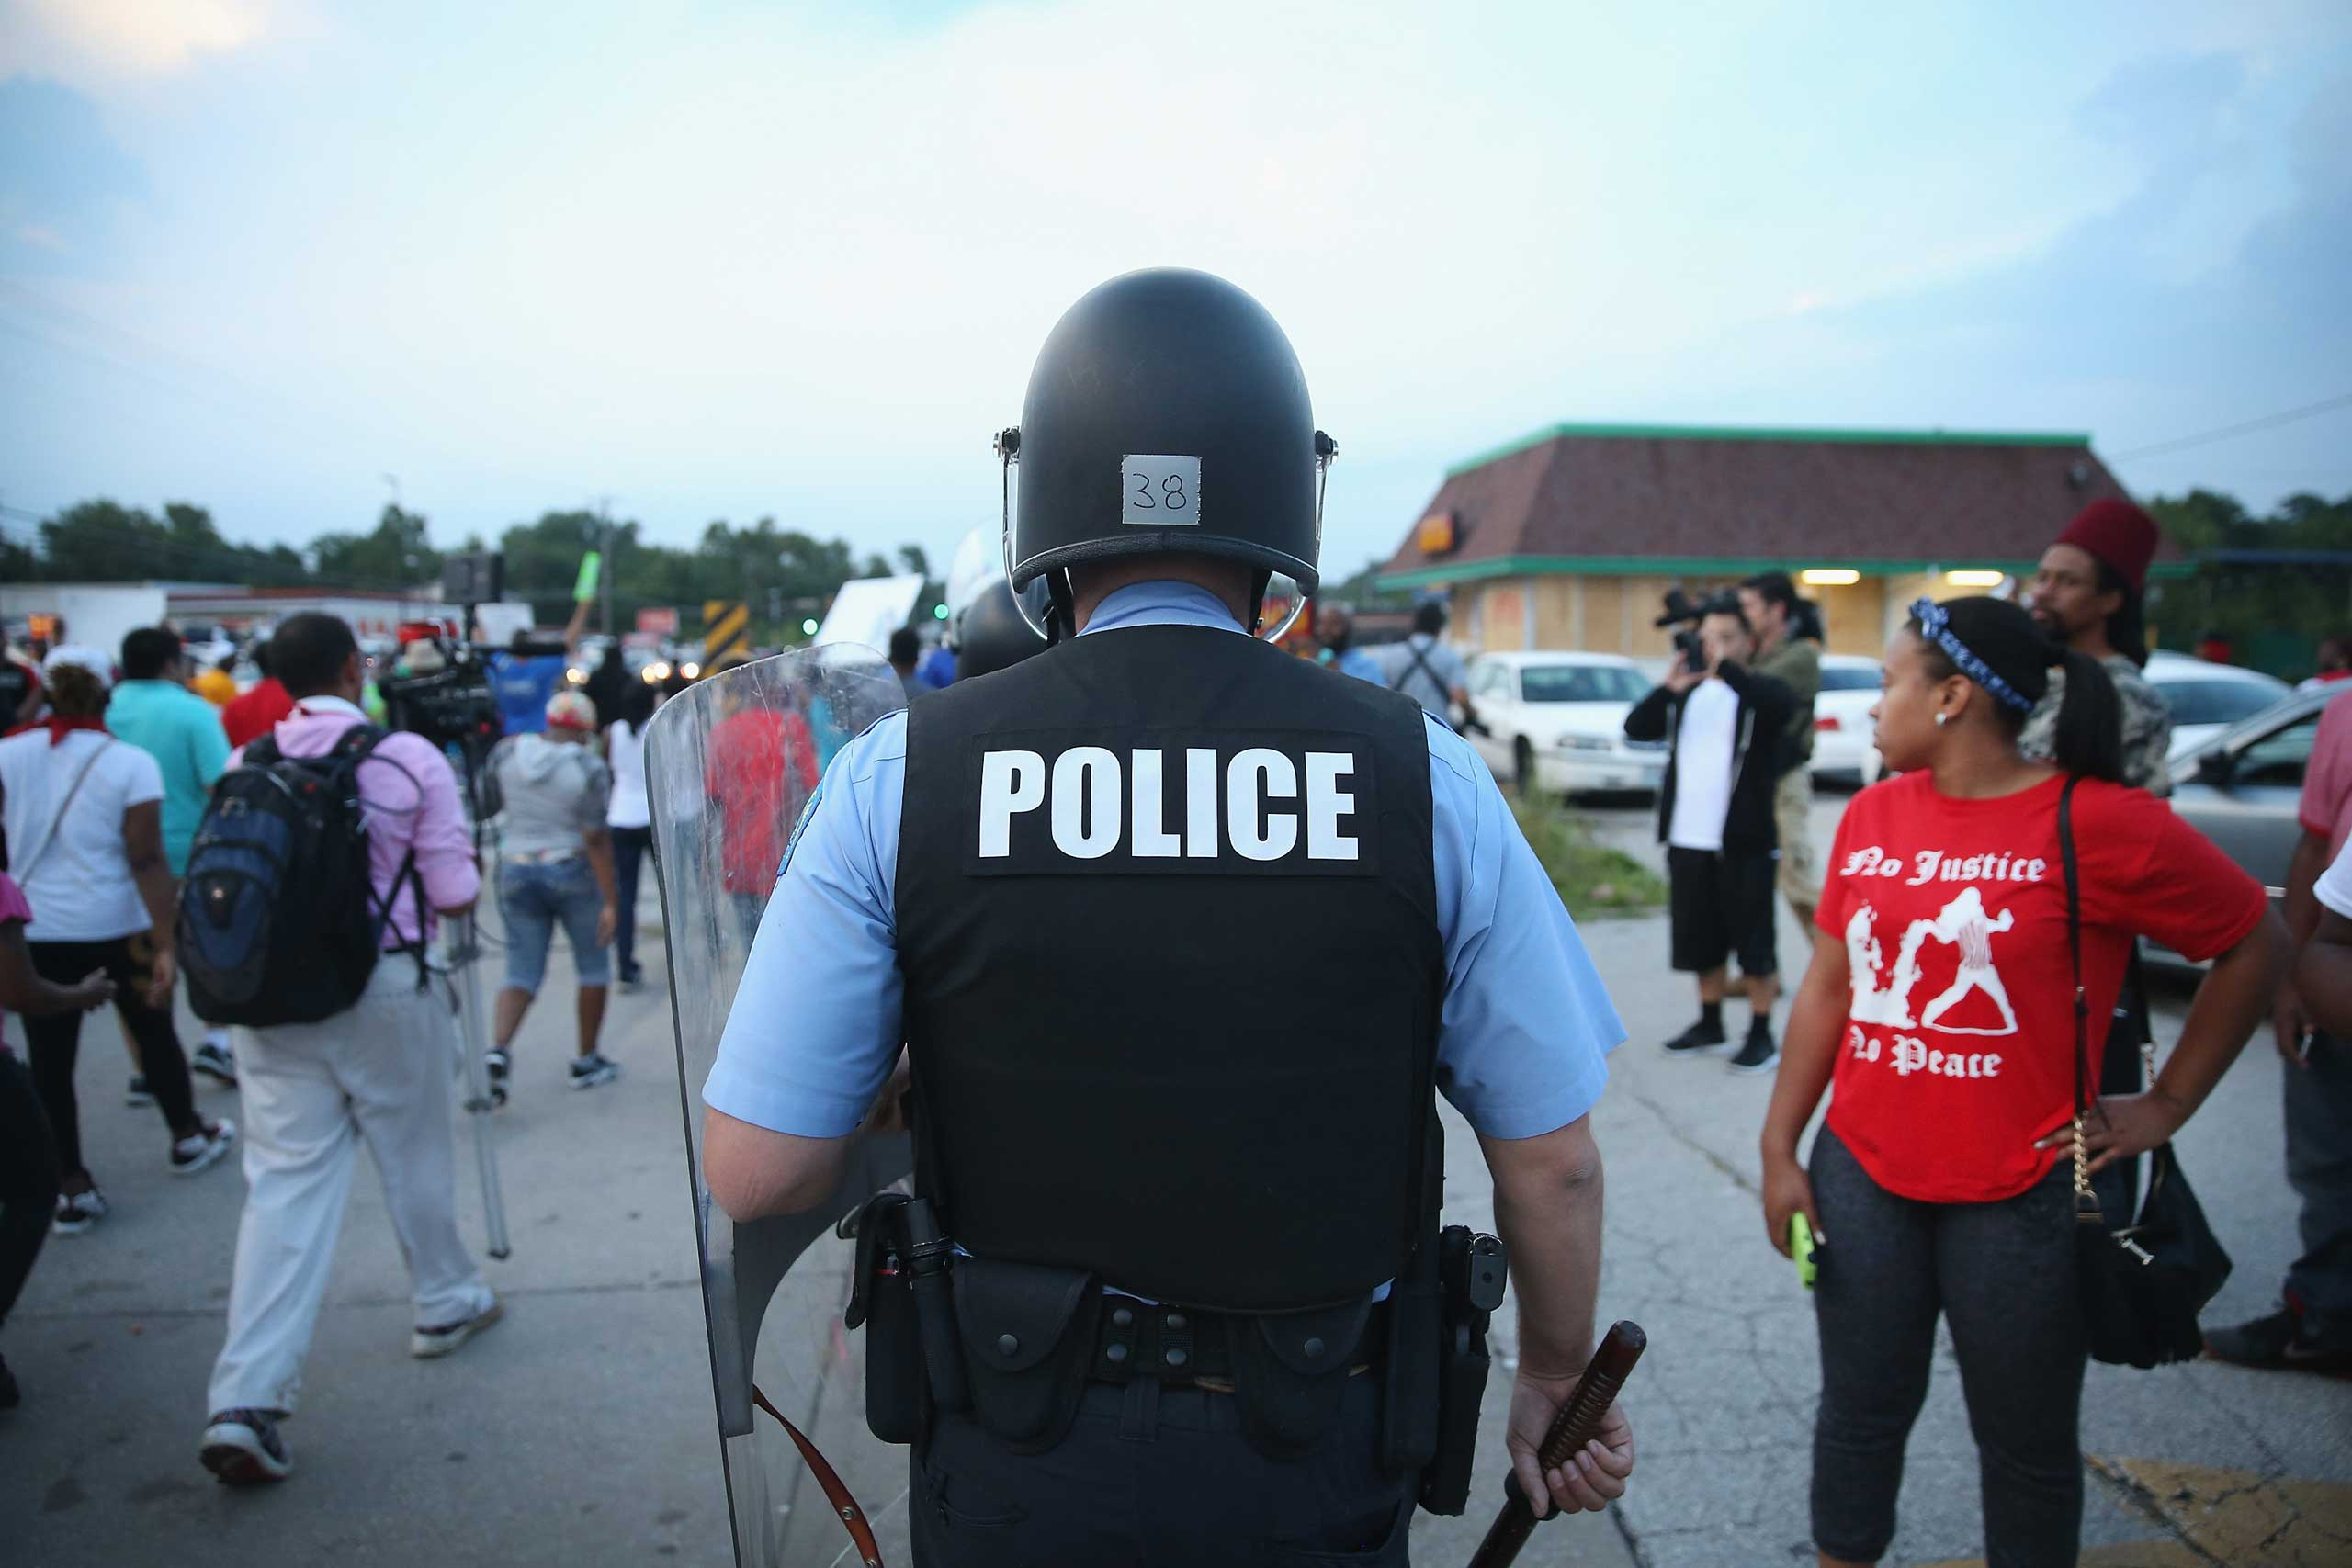 Police are deployed to keep peace along Florissant Avenue in Ferguson, Mo. on Aug. 16, 2014.